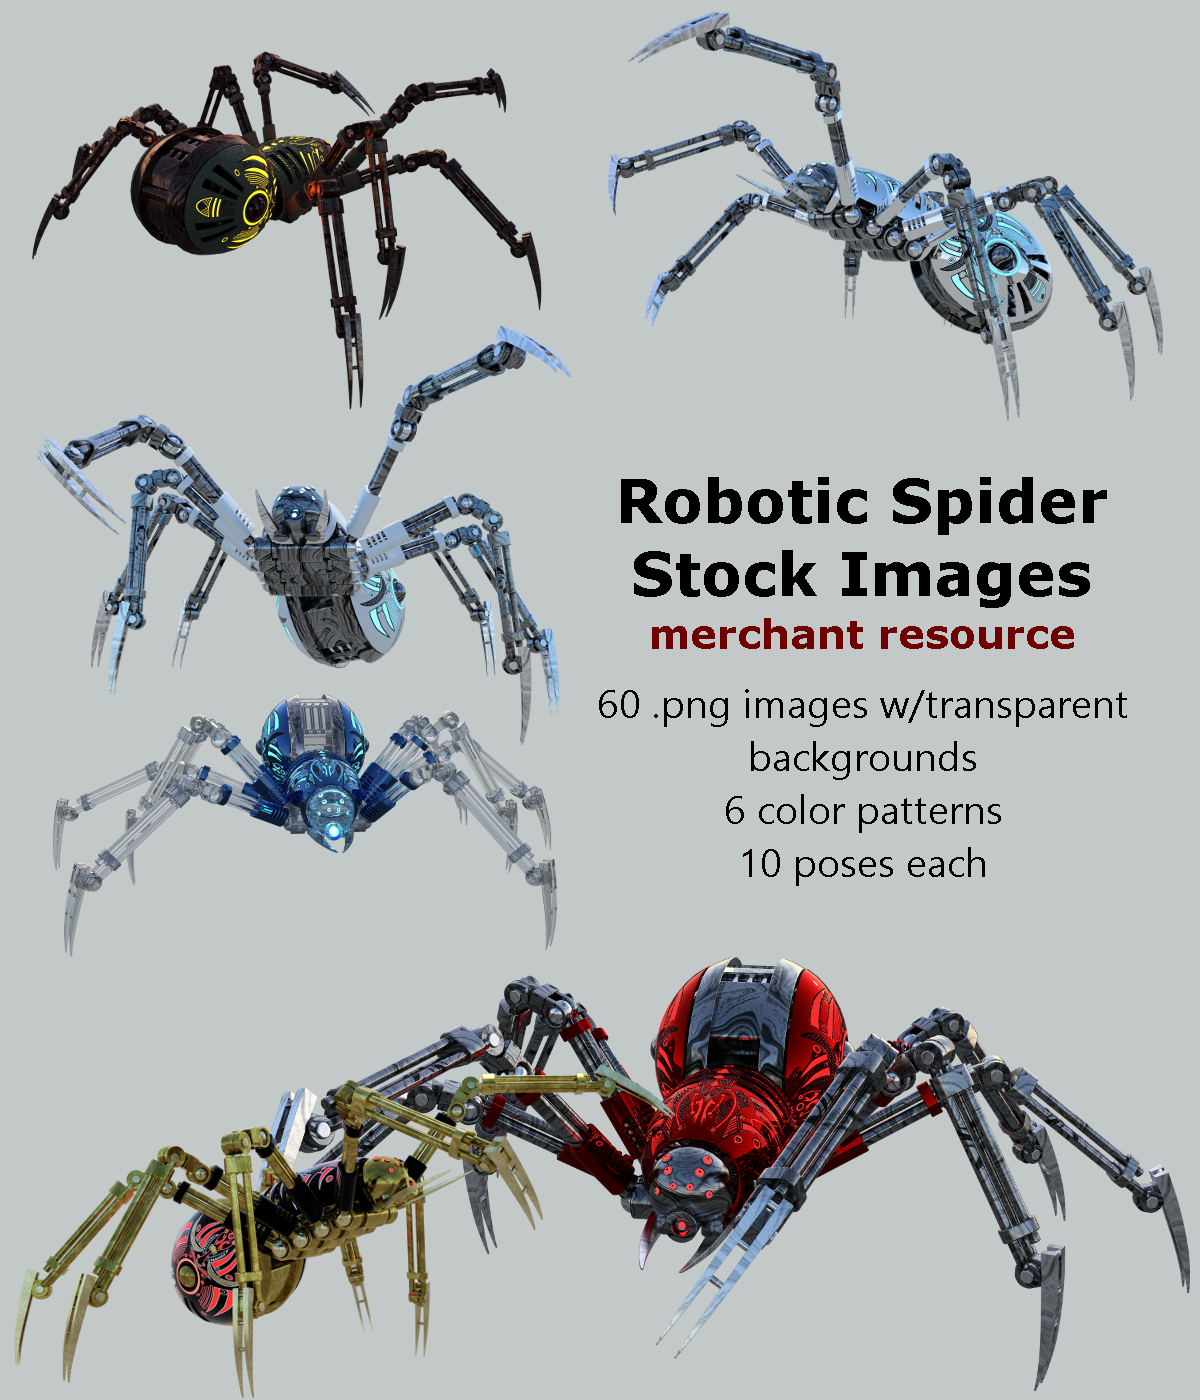 Robotic Spider Stock Image Pack_01